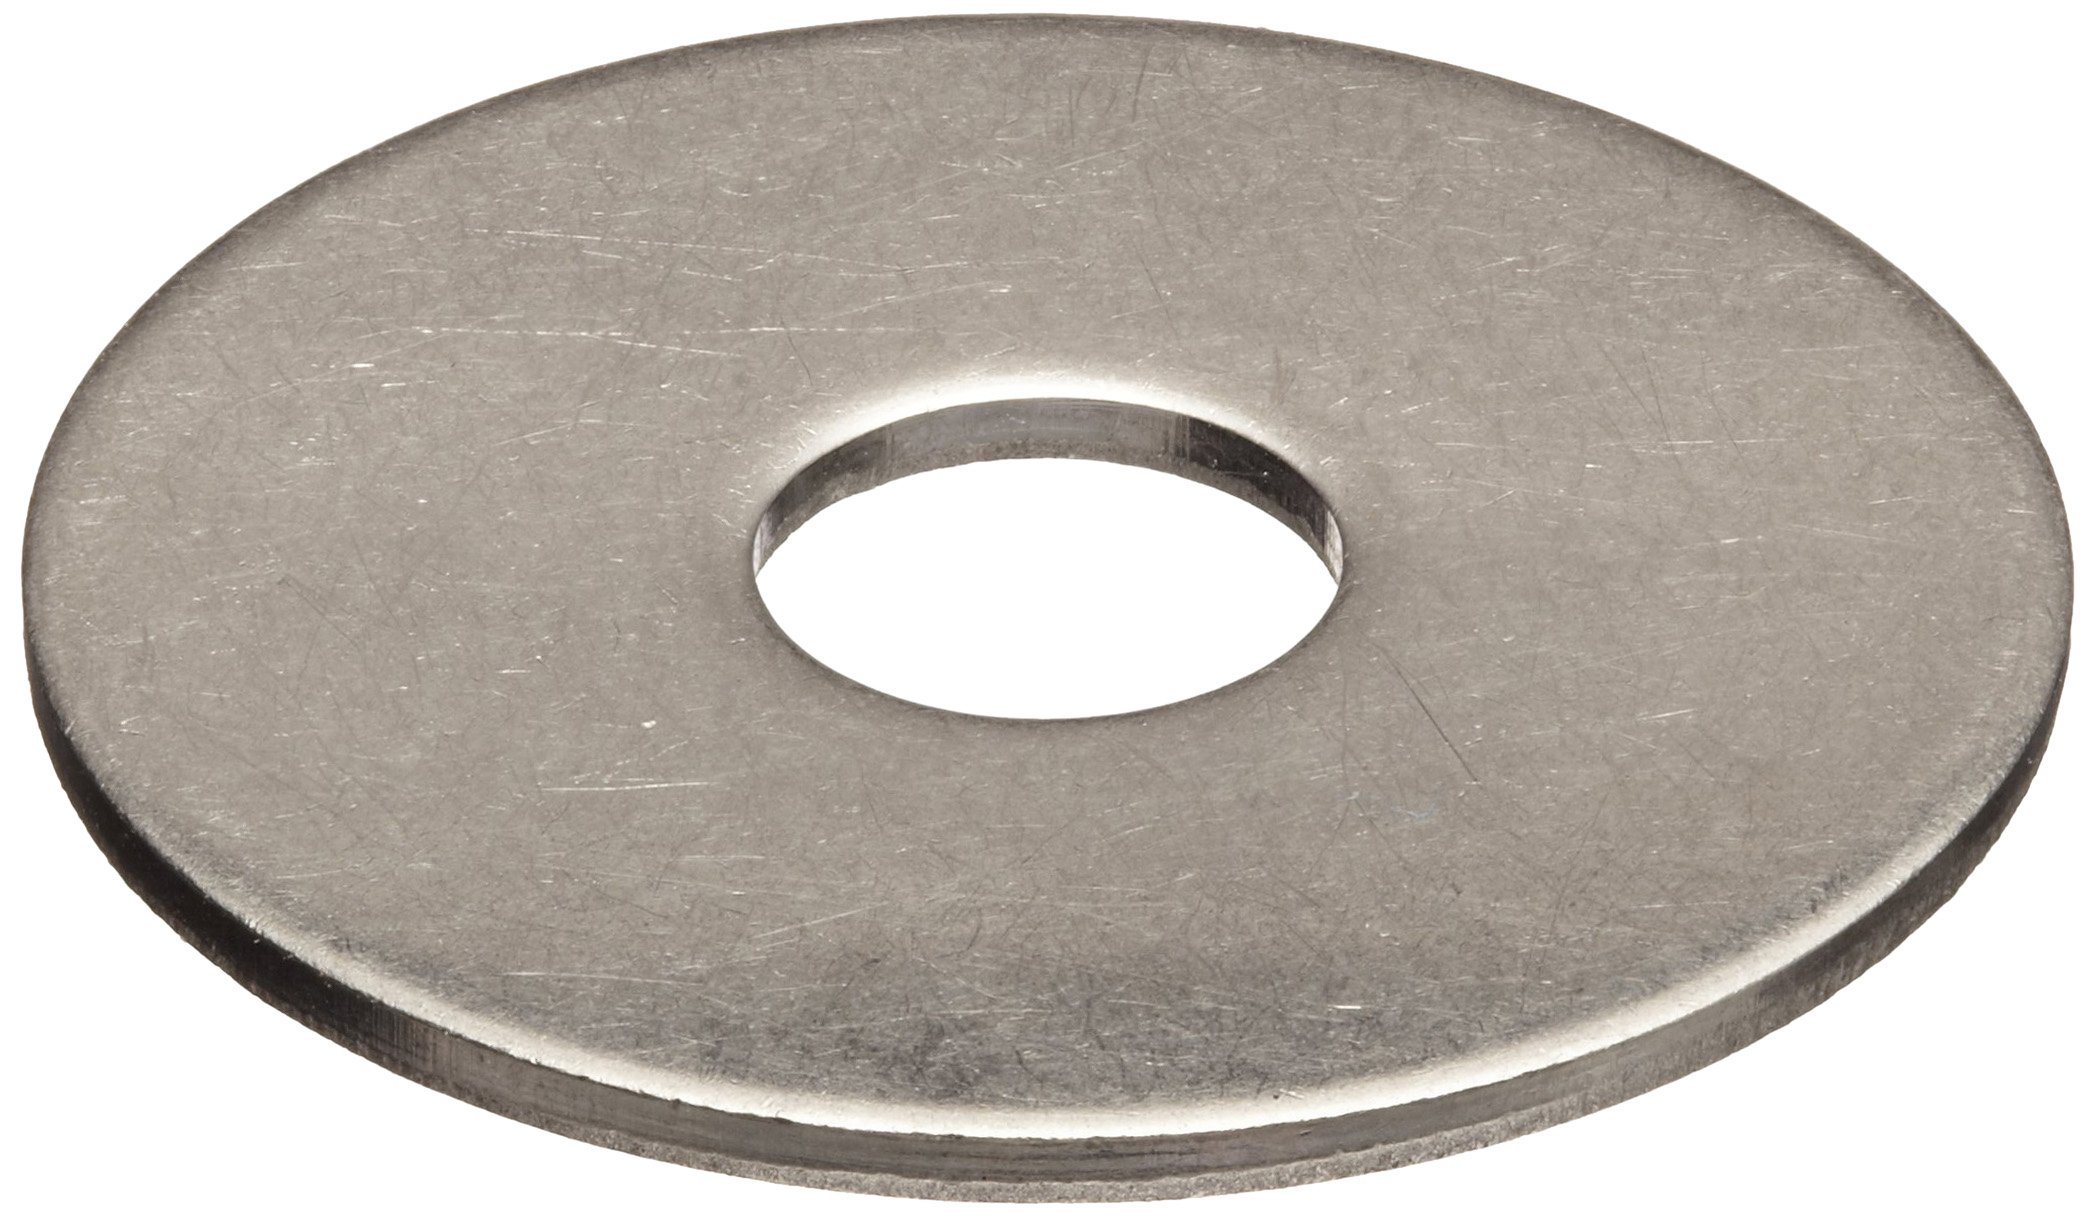 316 Stainless Steel Flat Washer, 1/4'' Hole Size, 0.281'' ID, 1'' OD, 0.05'' Nominal Thickness, Made in US (Pack of 25)